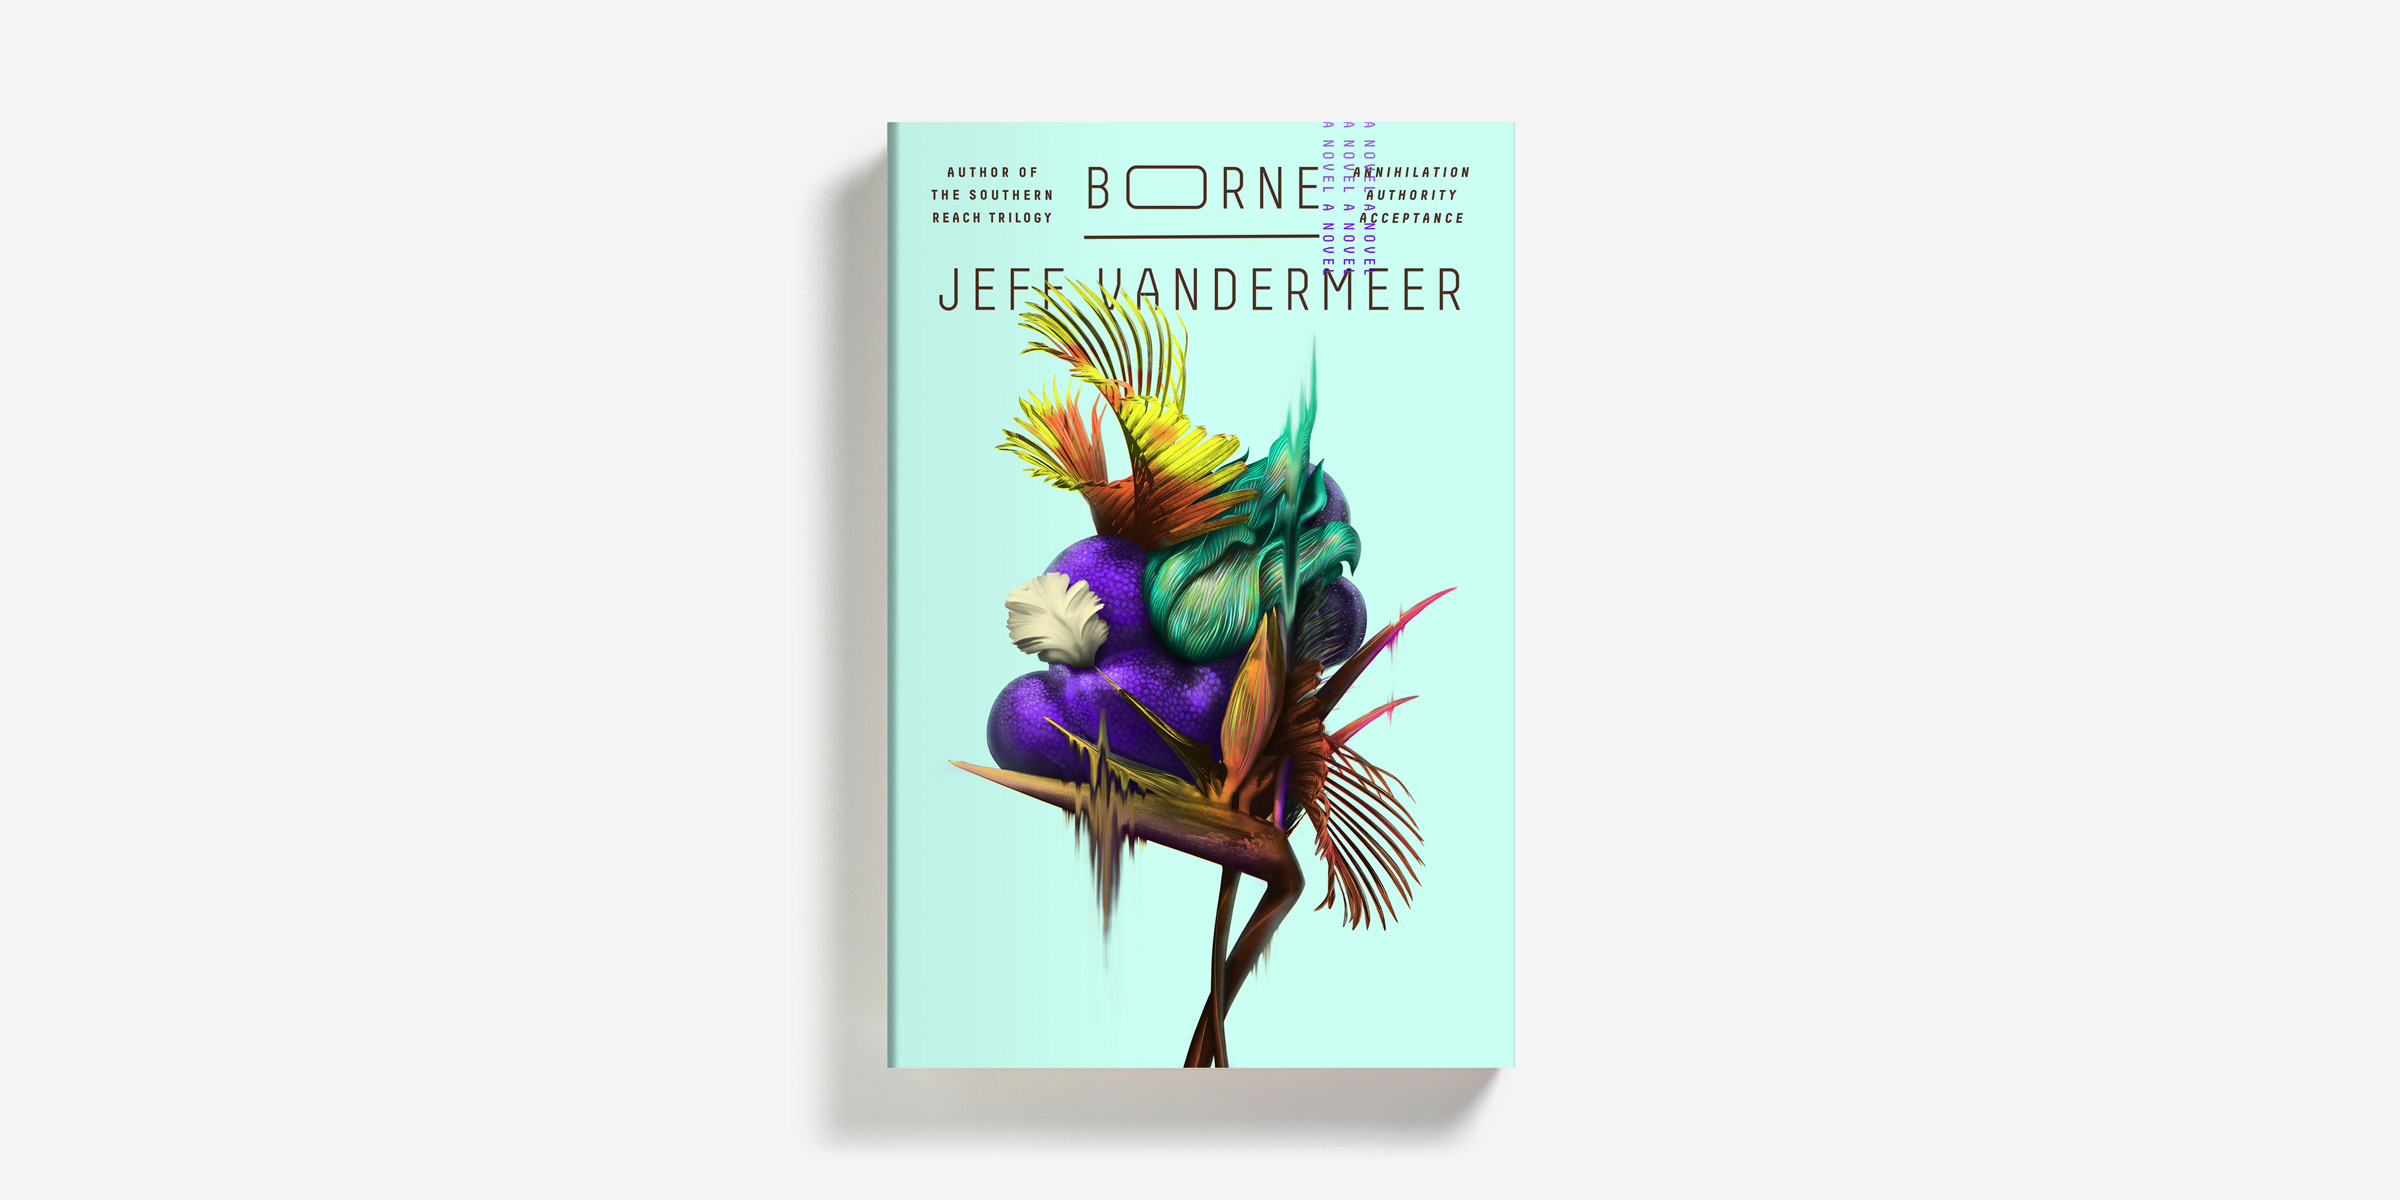 "#10. Borne by Jeff Vandermeer. """"Am I a person?"" Borne asks Rachel, in extremis. ""Yes, you are a person,"" Rachel tells him. ""But like a person, you can be a weapon, too."" In a ruined, nameless city of the future, Rachel makes her living as a scavenger."" (Image: MCD)"